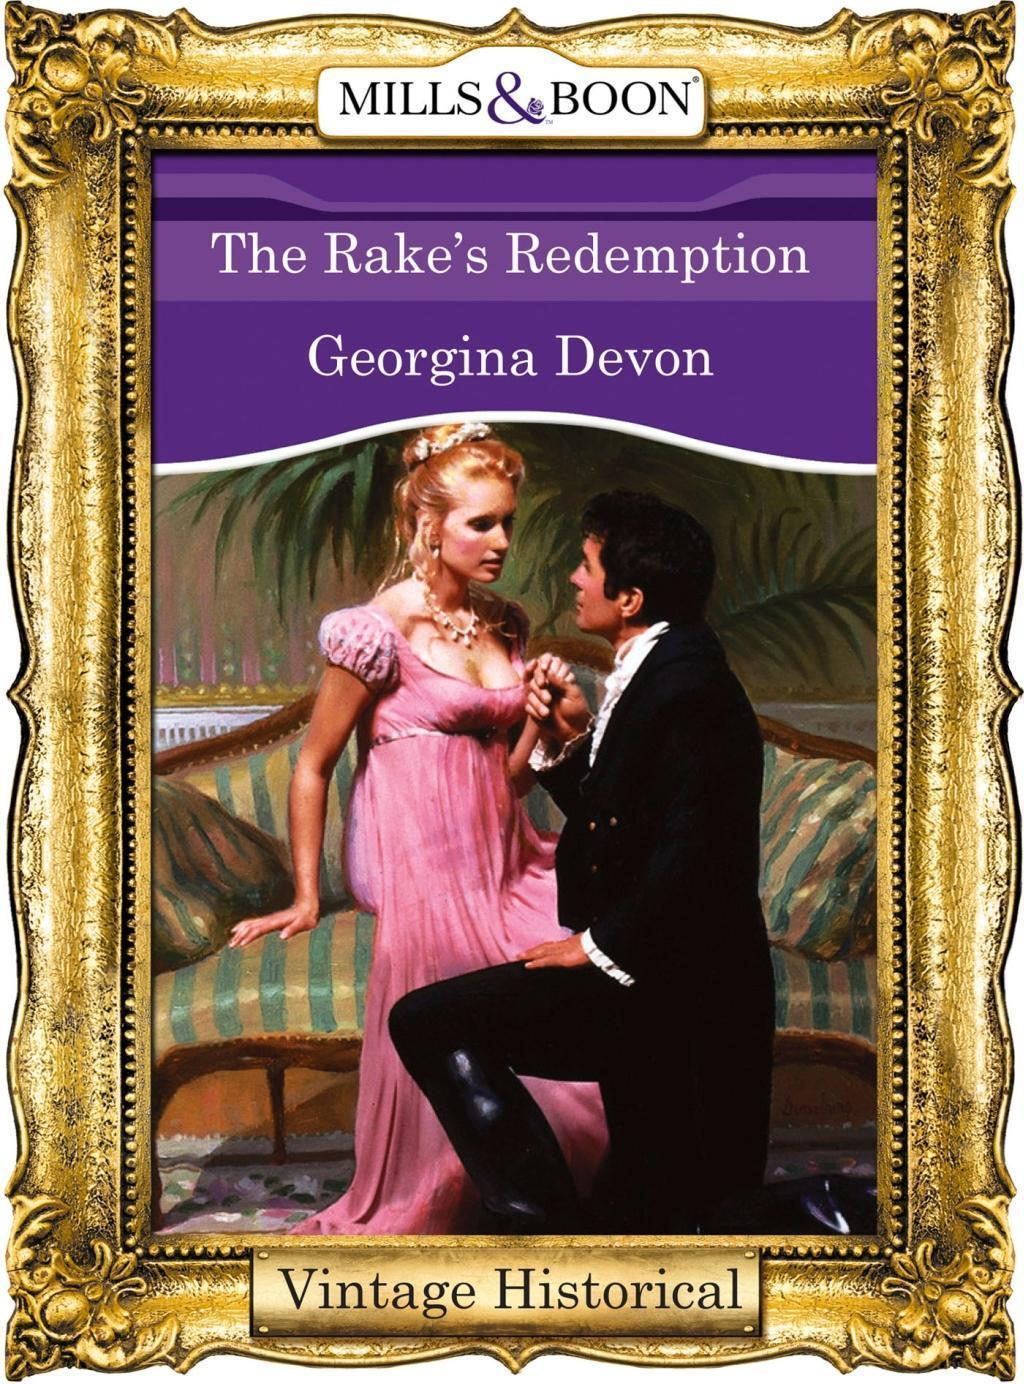 The Rake's Redemption (Mills & Boon Historical)